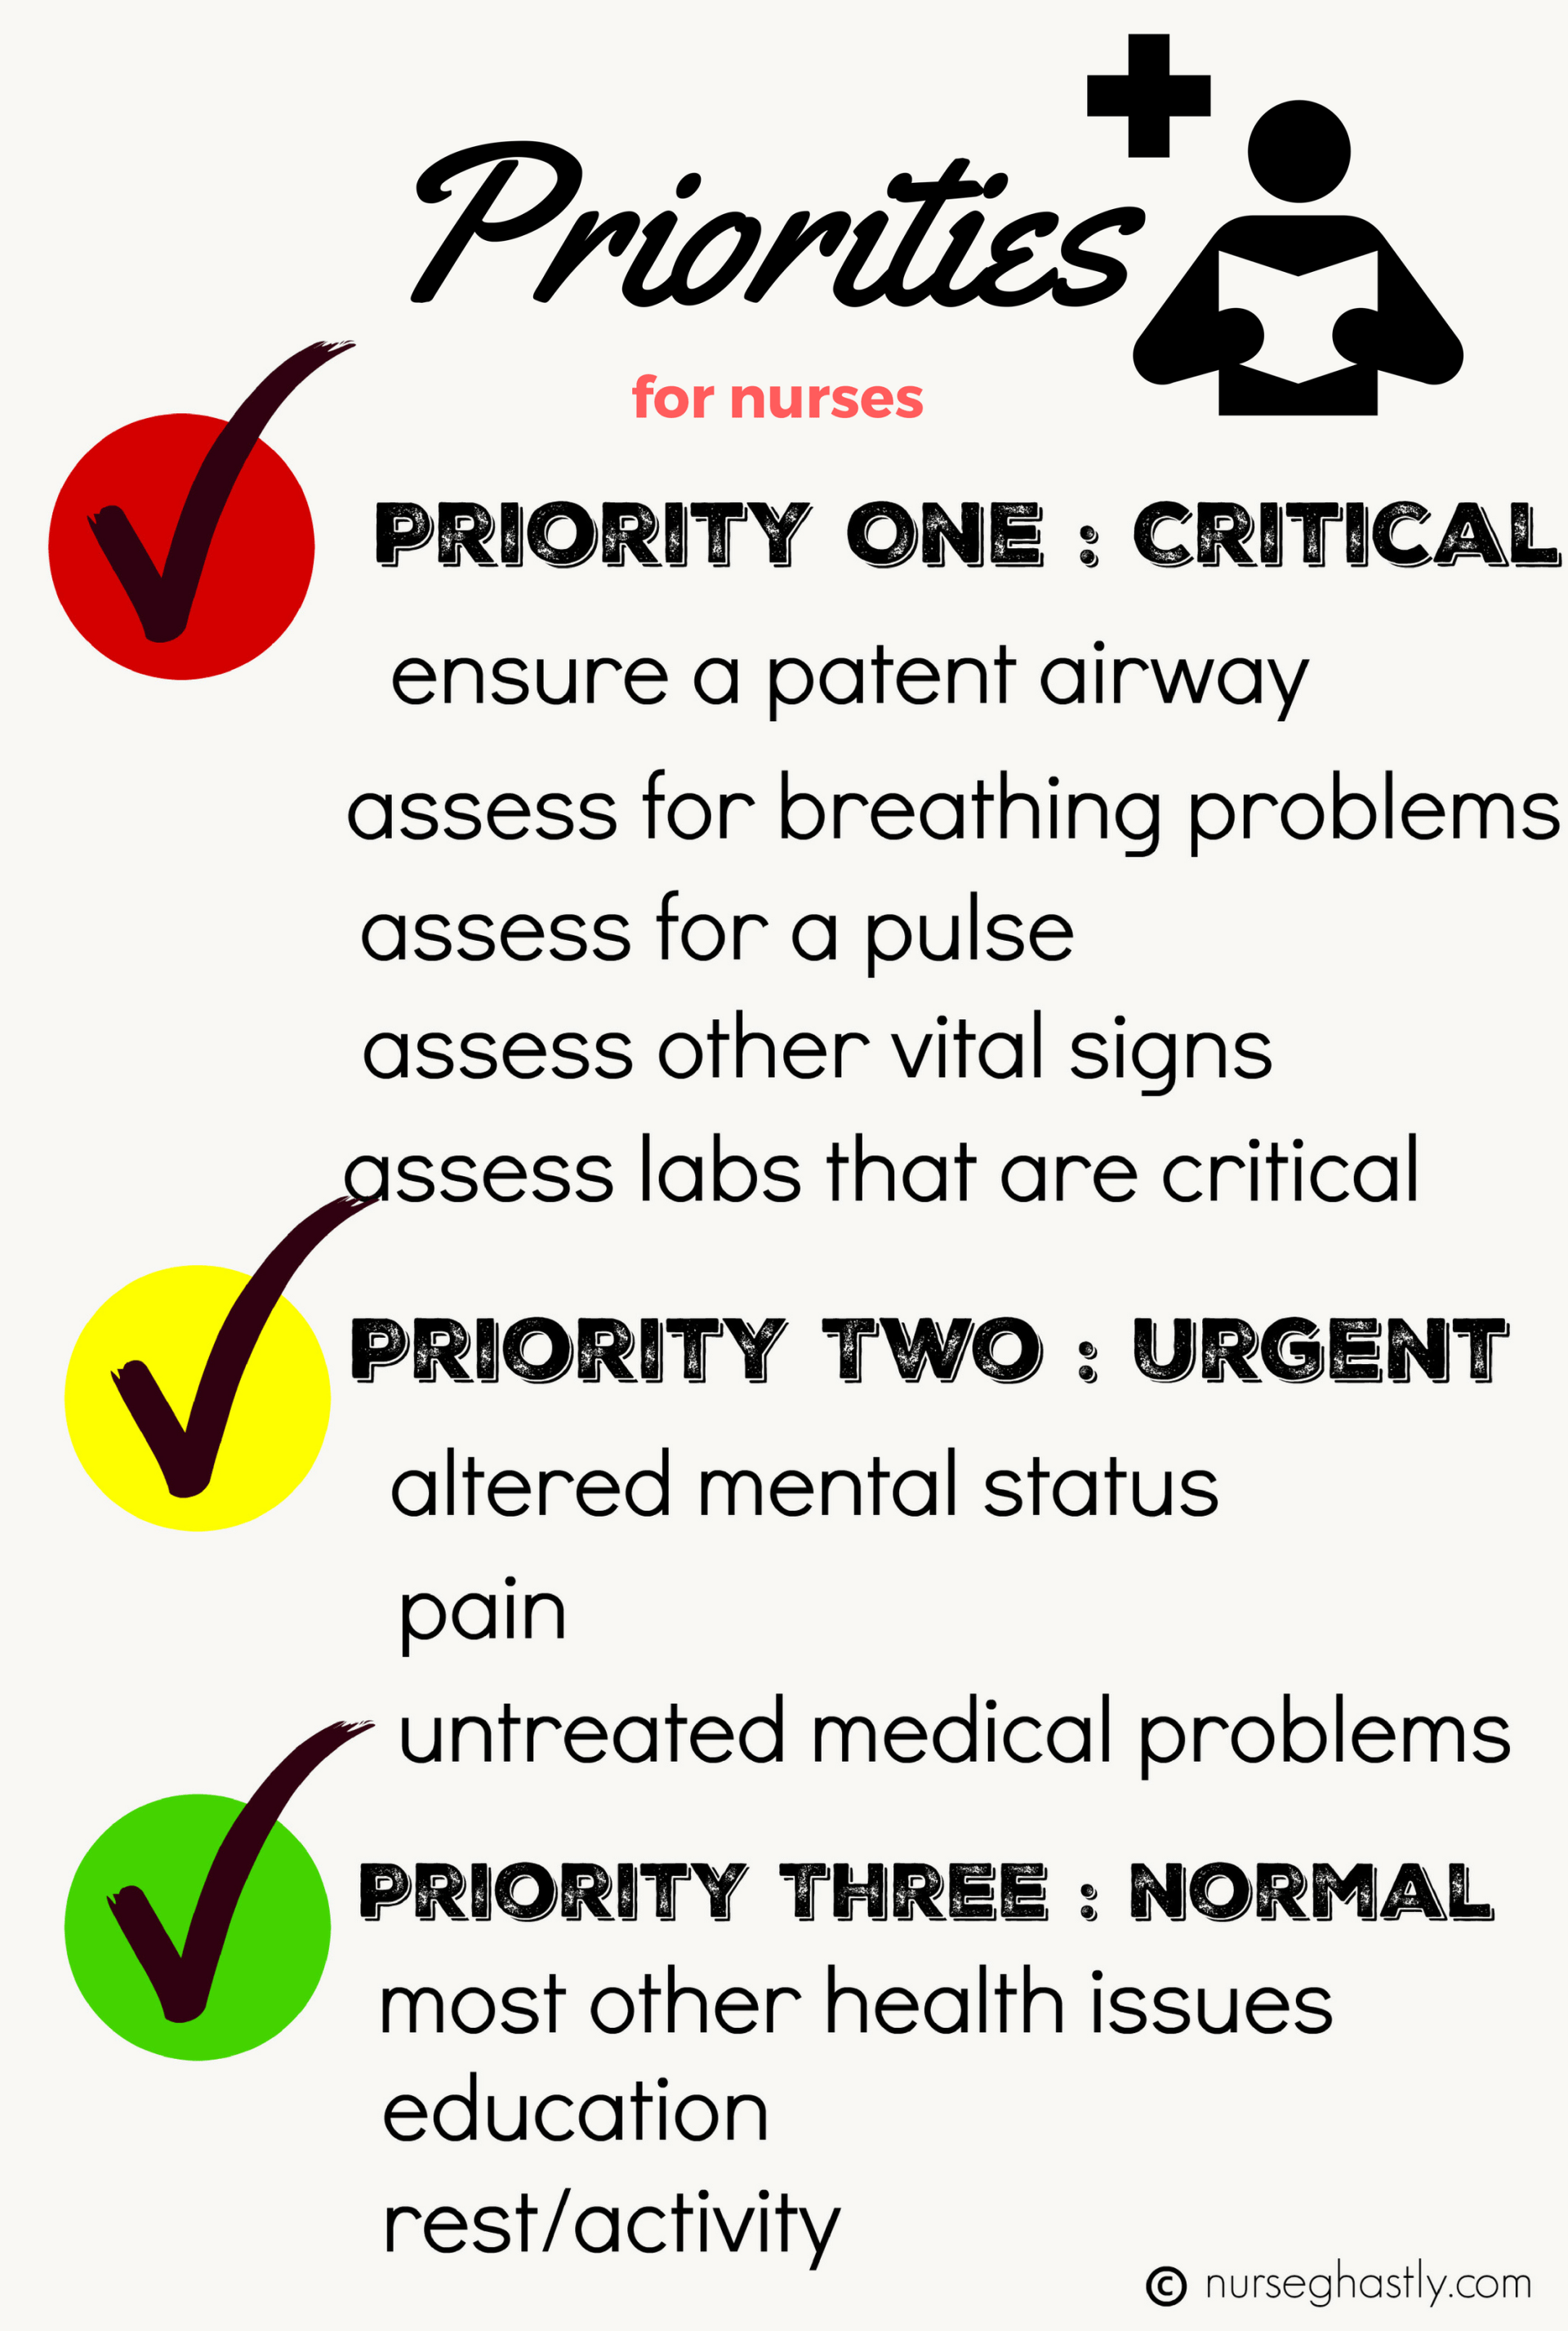 nurses prioritize patients and tasks based on a variety of things learn more at nurseghastly com